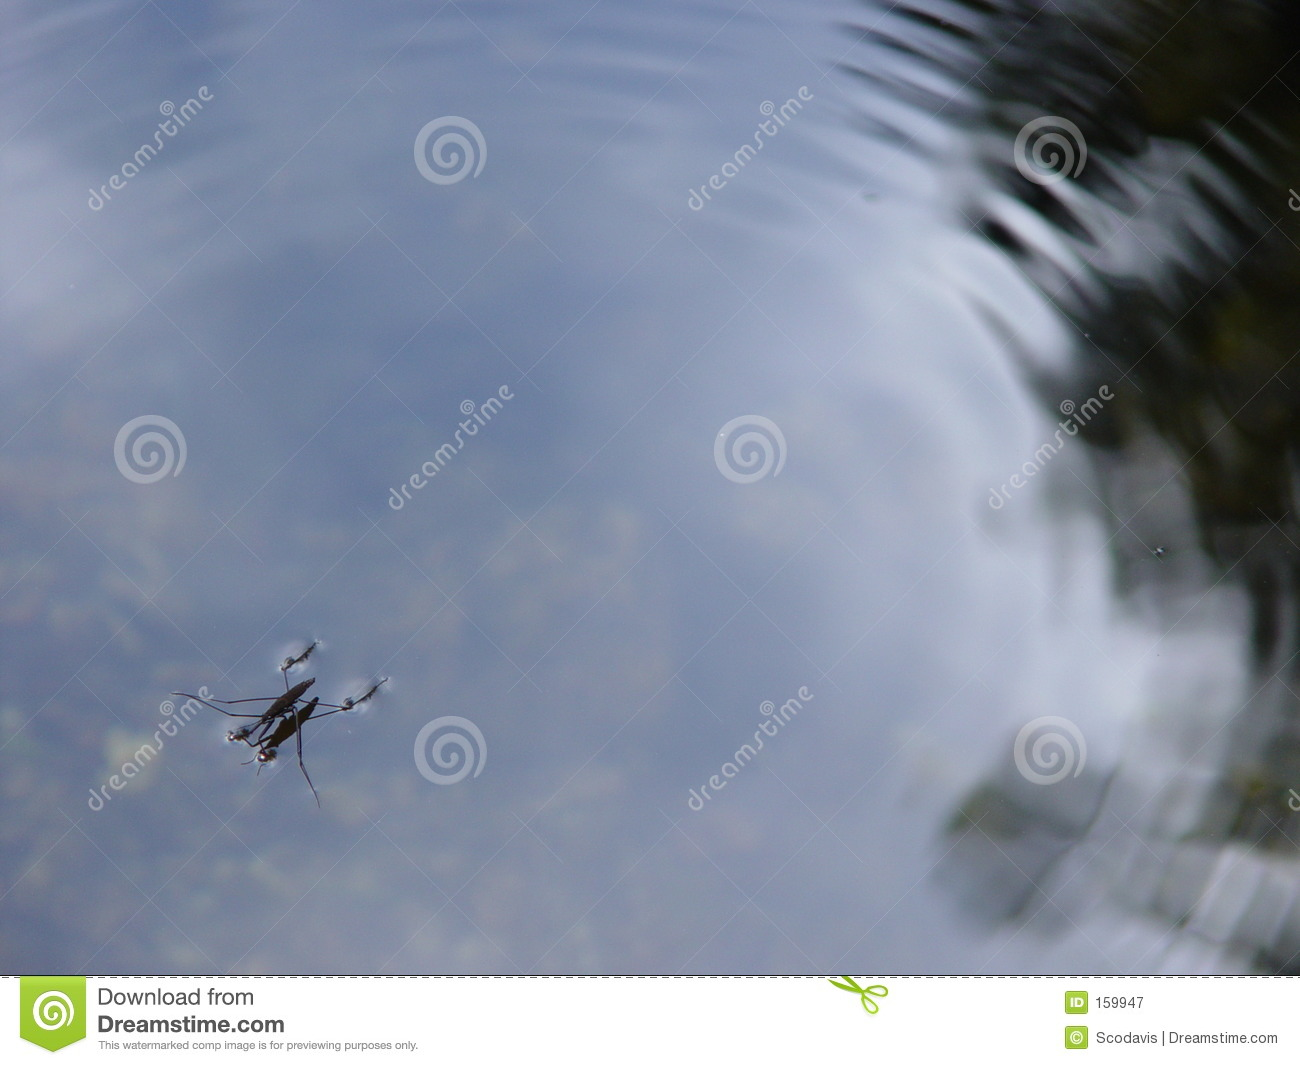 Insect In Water